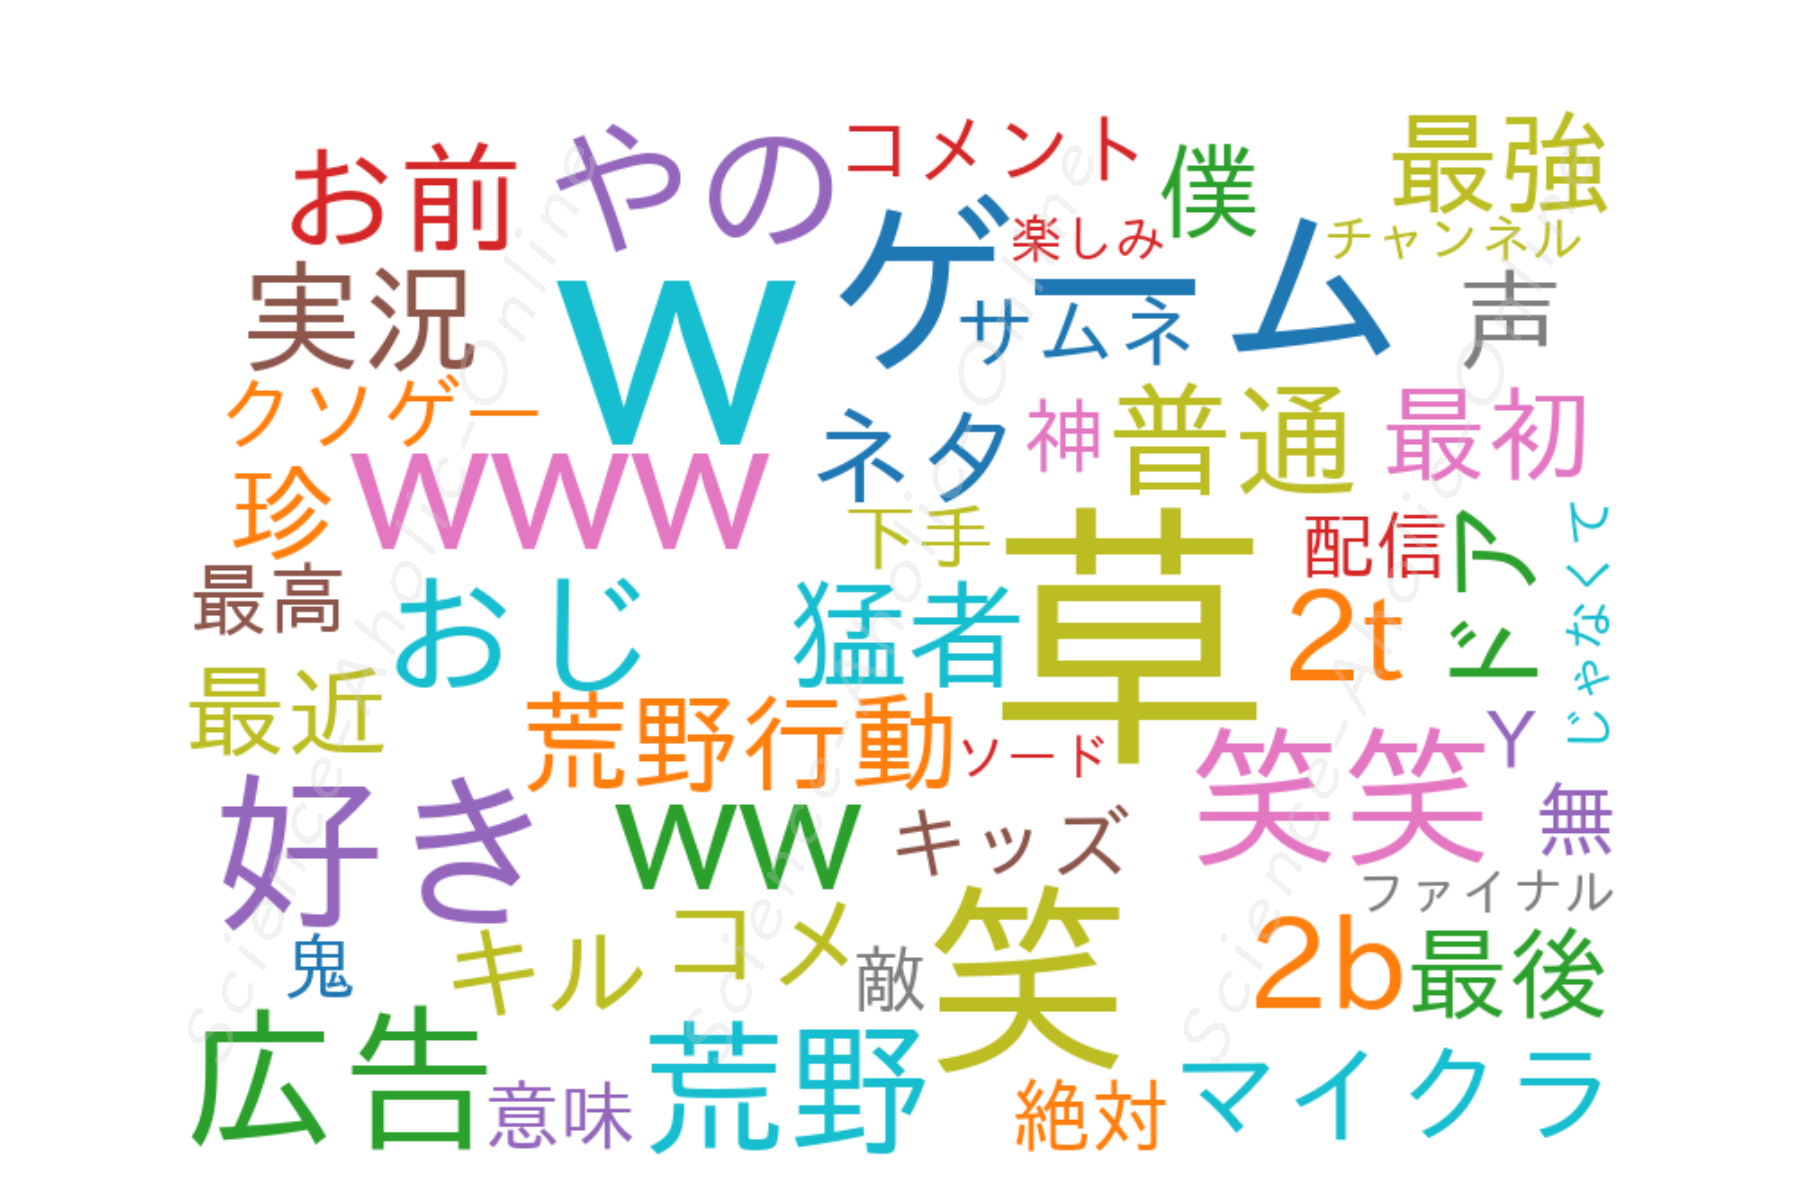 https://science-aholic-online.com/wp-content/uploads/2020/08/wordcloud_o-228おにや.png